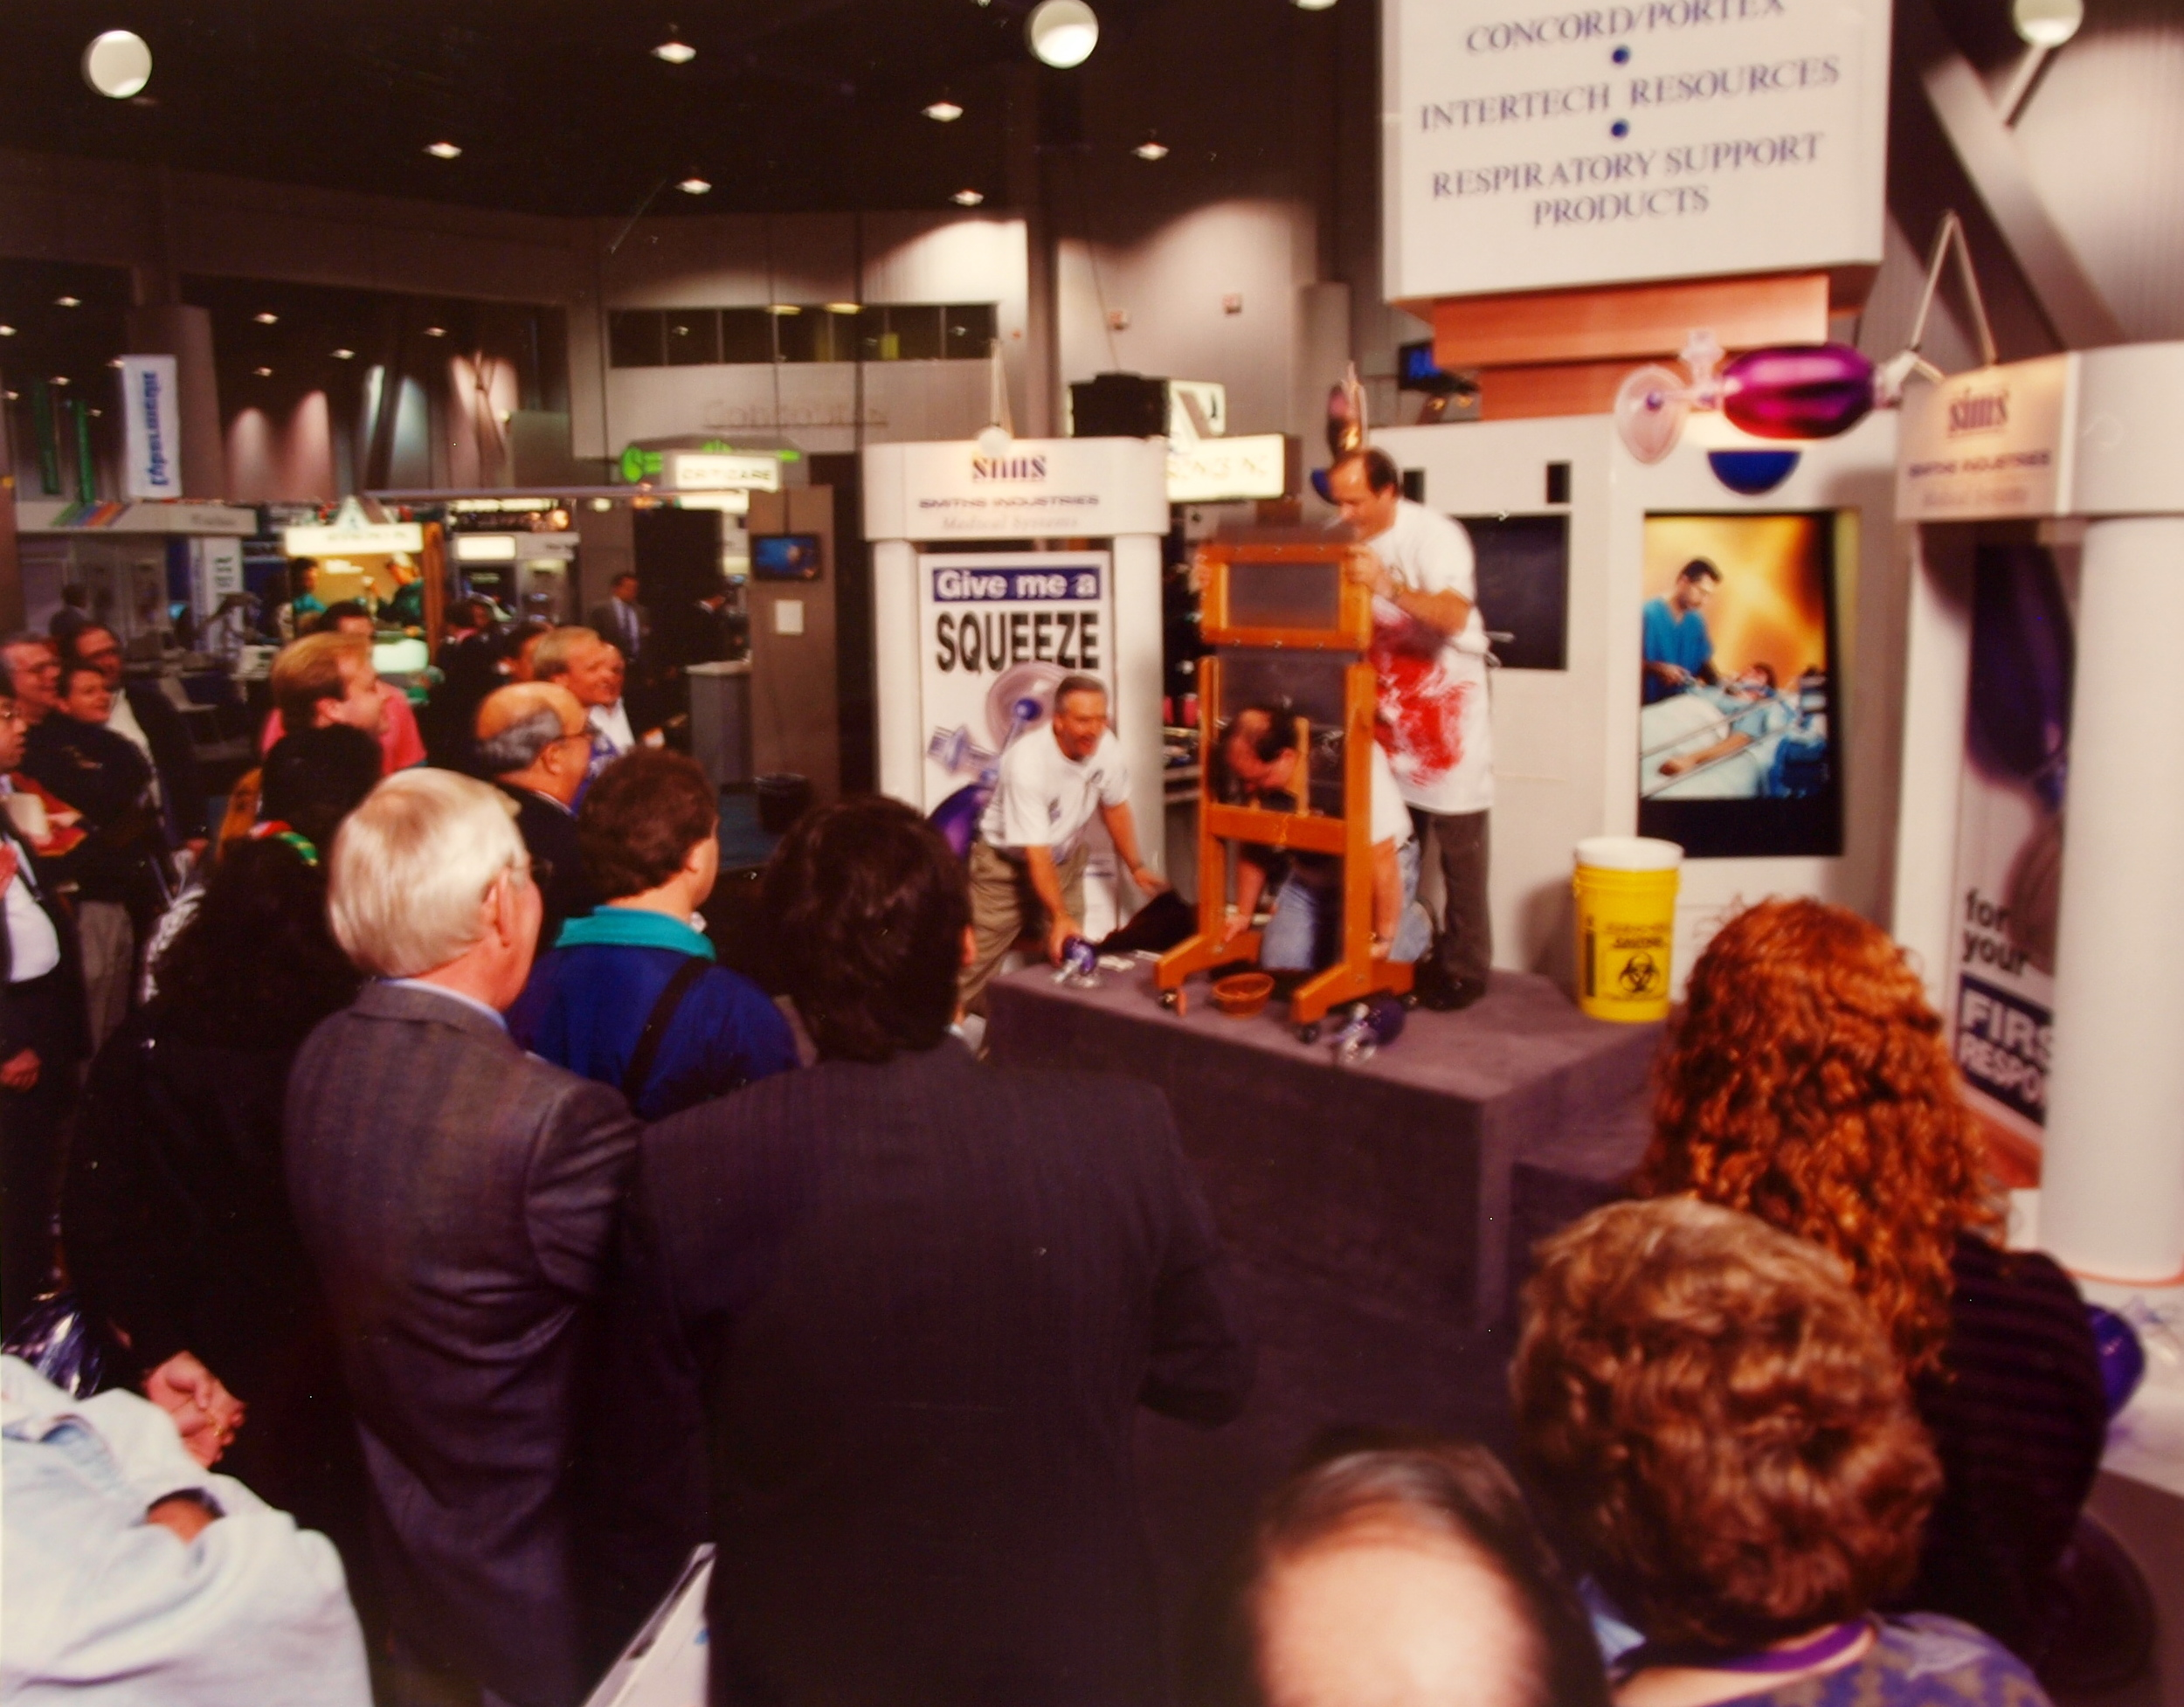 Magical product demonstration at medical convention